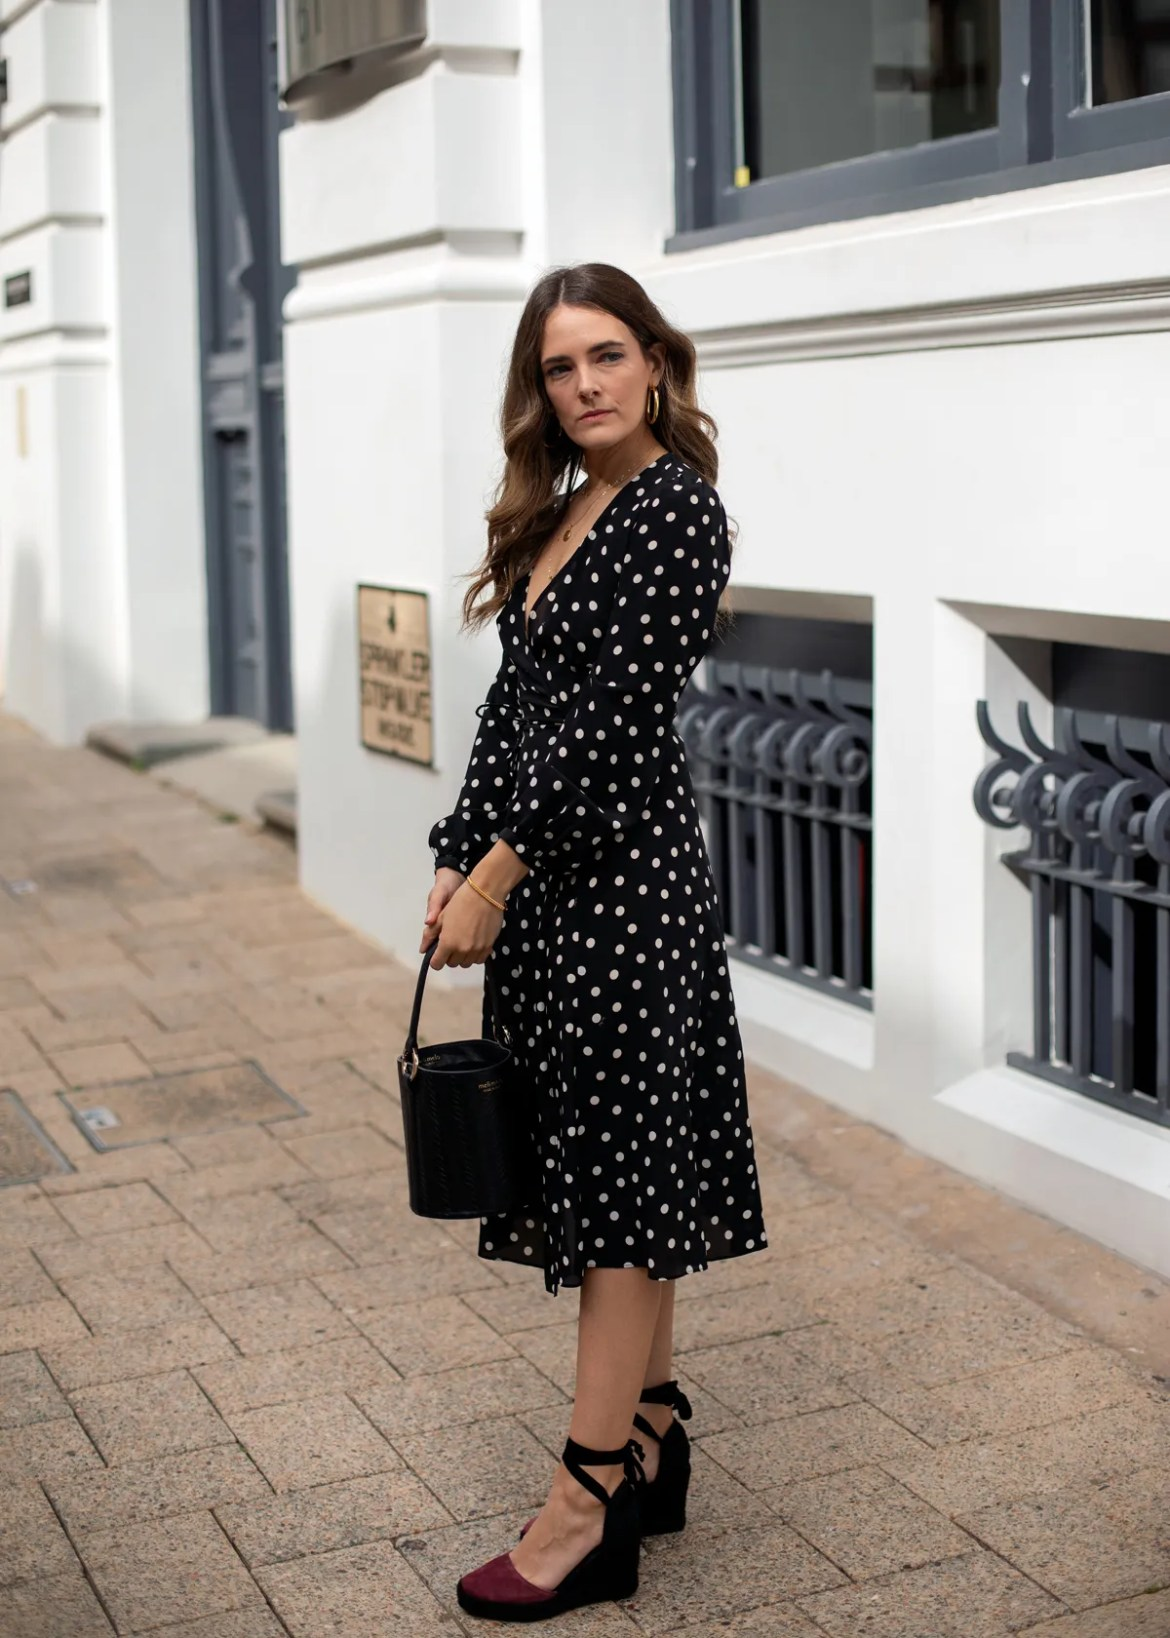 Realisation Par polka dot dress and Alohas Sandals wedge espadrilles worn by fashion and travel blogger Jenelle Witty from Inspiring Wit